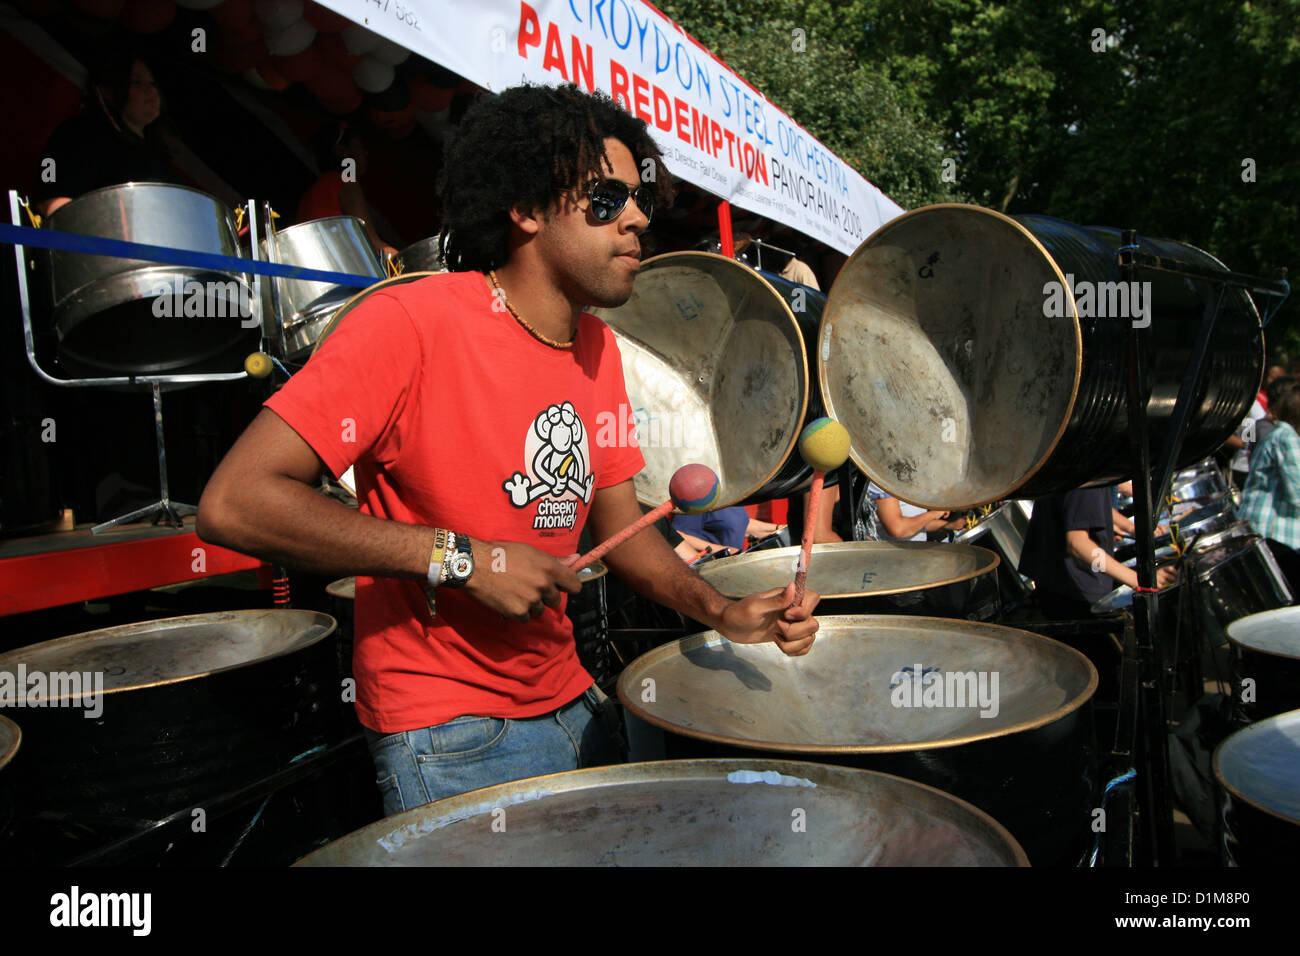 image london photos steel images stock bands photo in panorama competition alamy drums